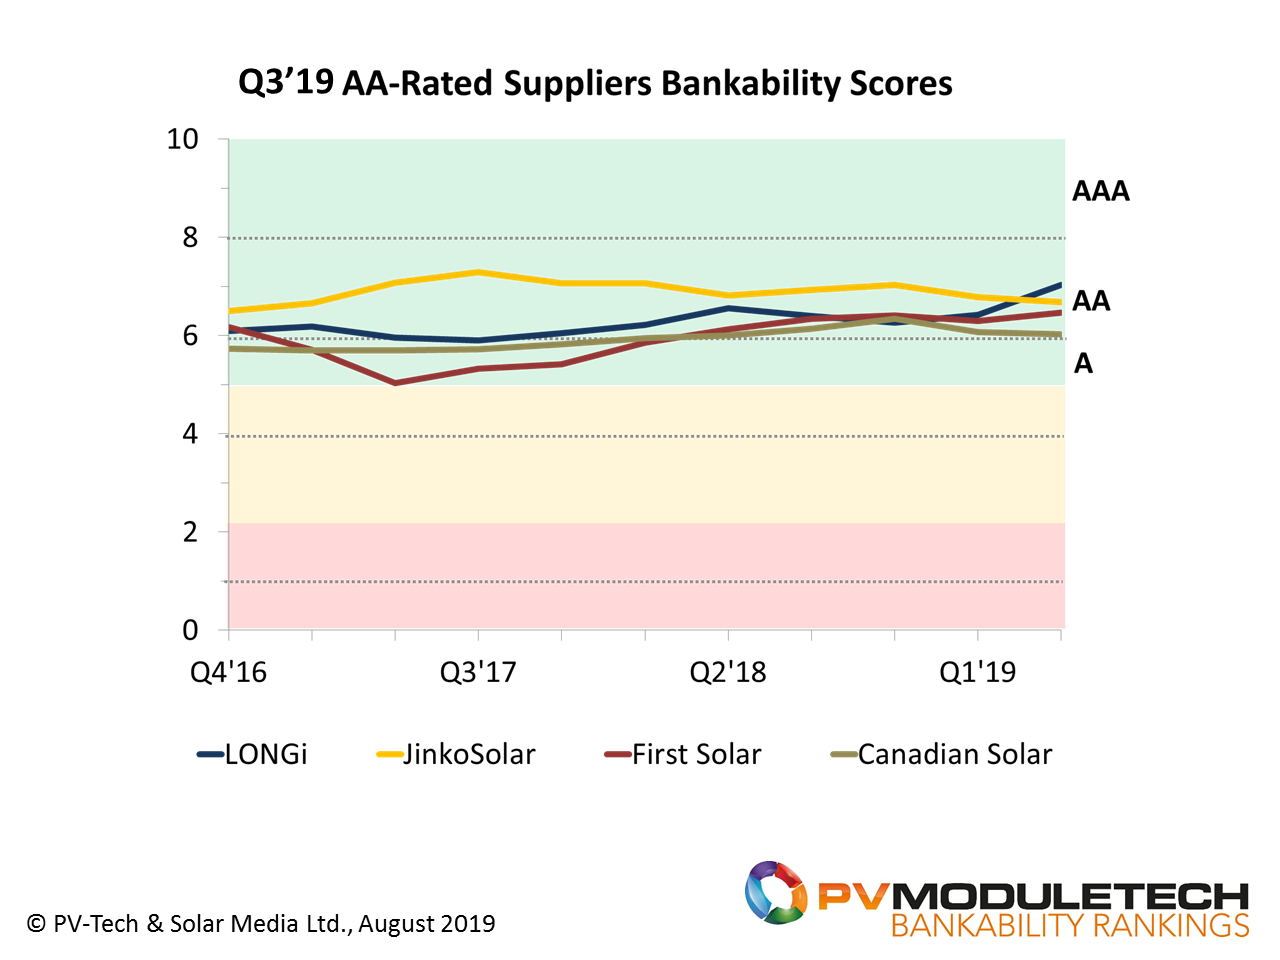 Only four PV module suppliers today achieve AA-Rated status in the Q3'19 release of the PV ModuleTech Bankability Ratings release; LONGi Solar, Jinko Solar, First Solar and Canadian Solar.